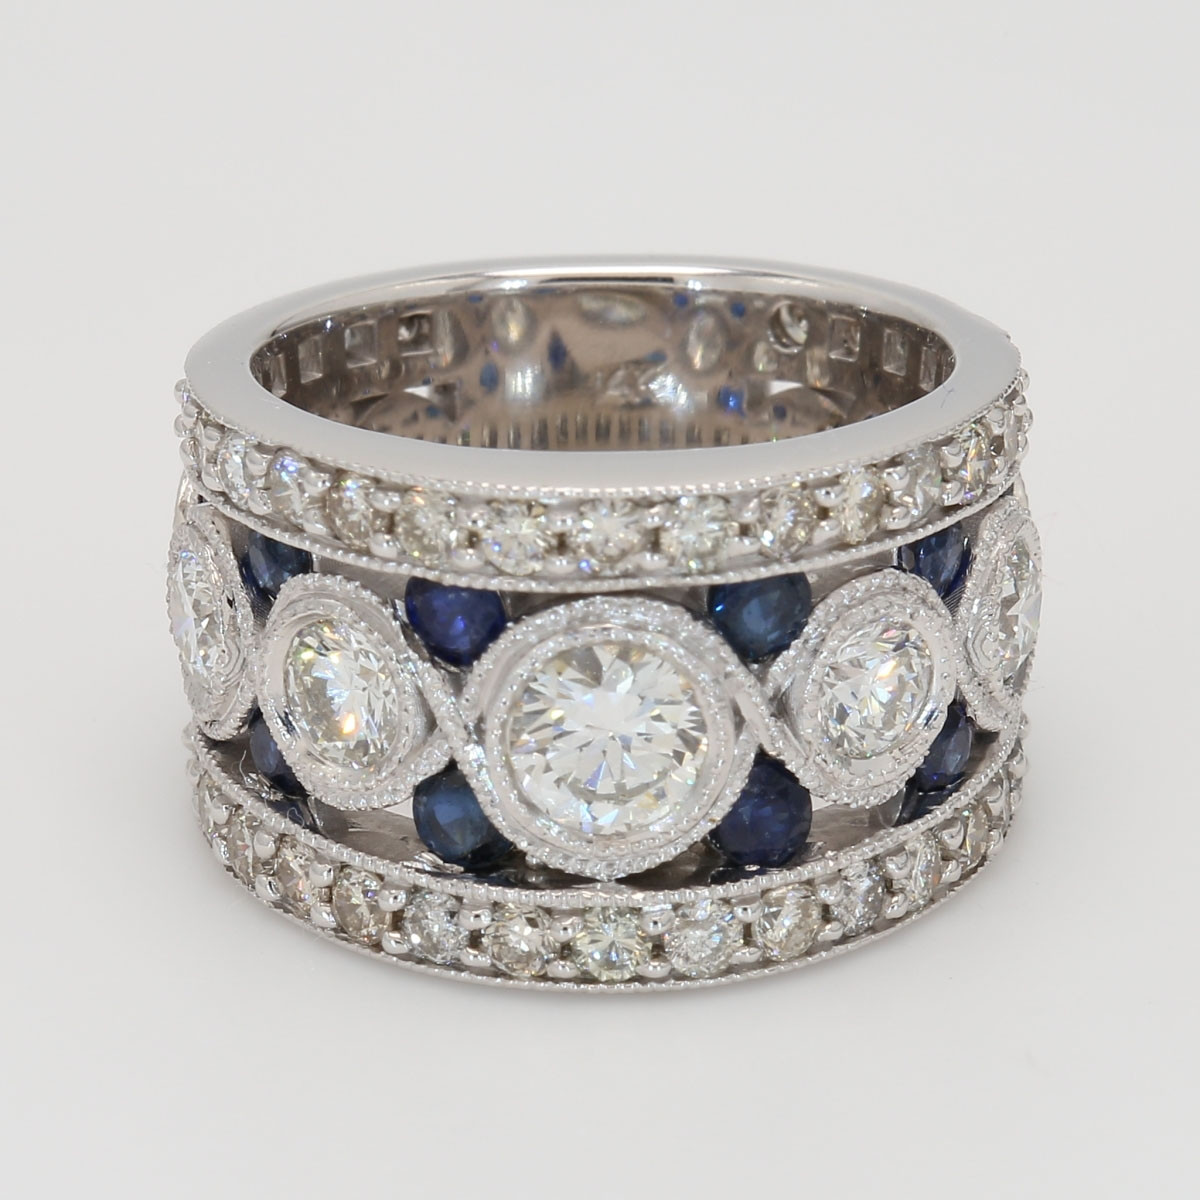 Ladies White Gold Diamond and Sapphire Band